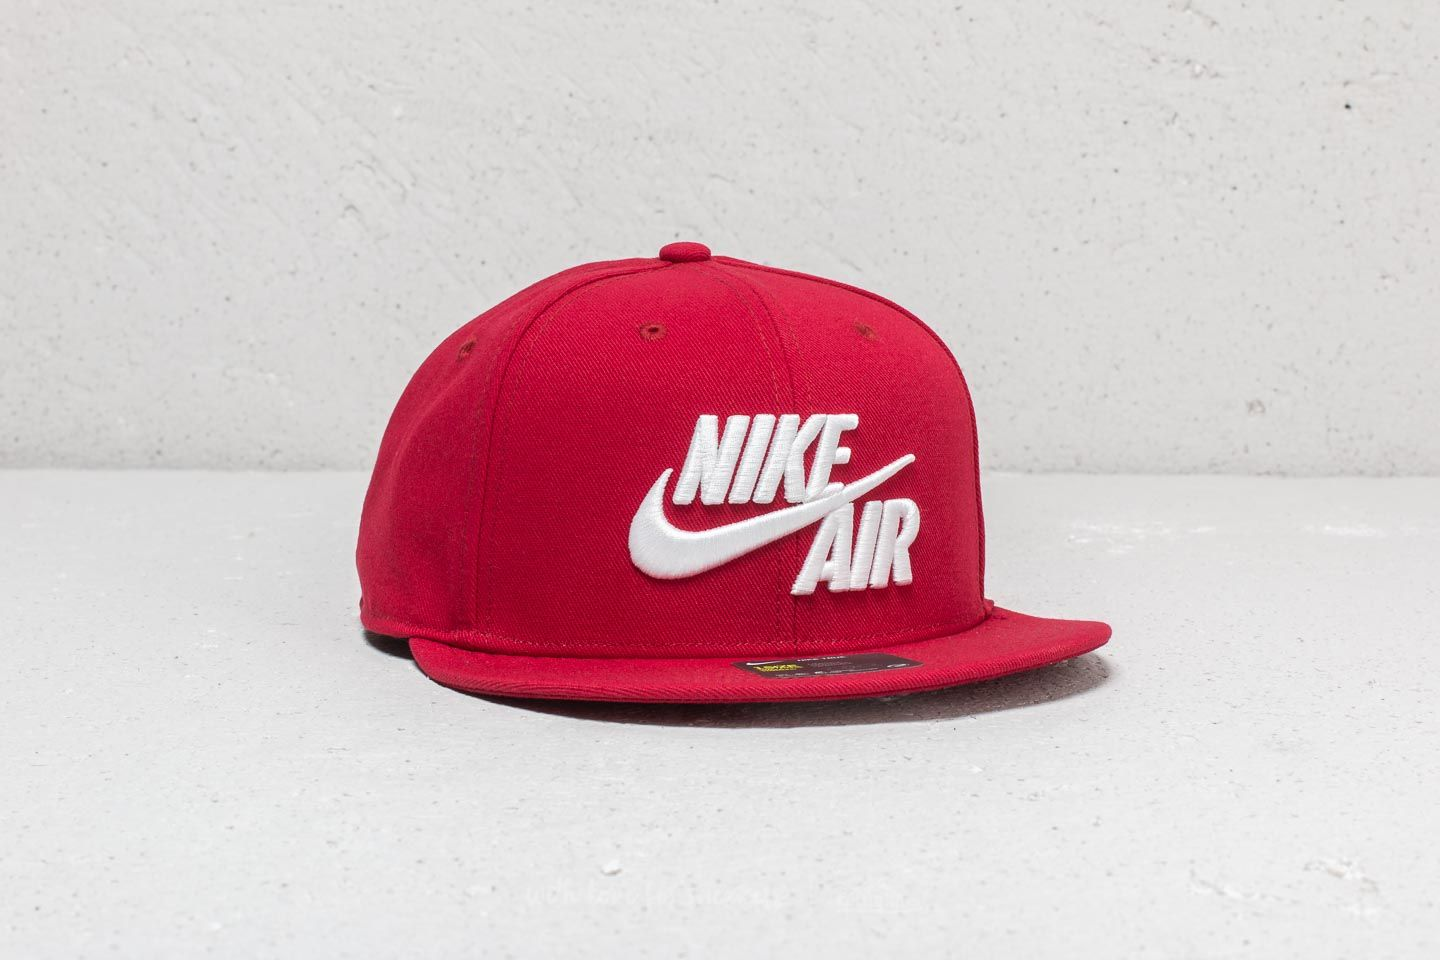 1ad022b4d72 ... ireland nike sportswear air classic true cap red white at a great price  29 buy 3a231